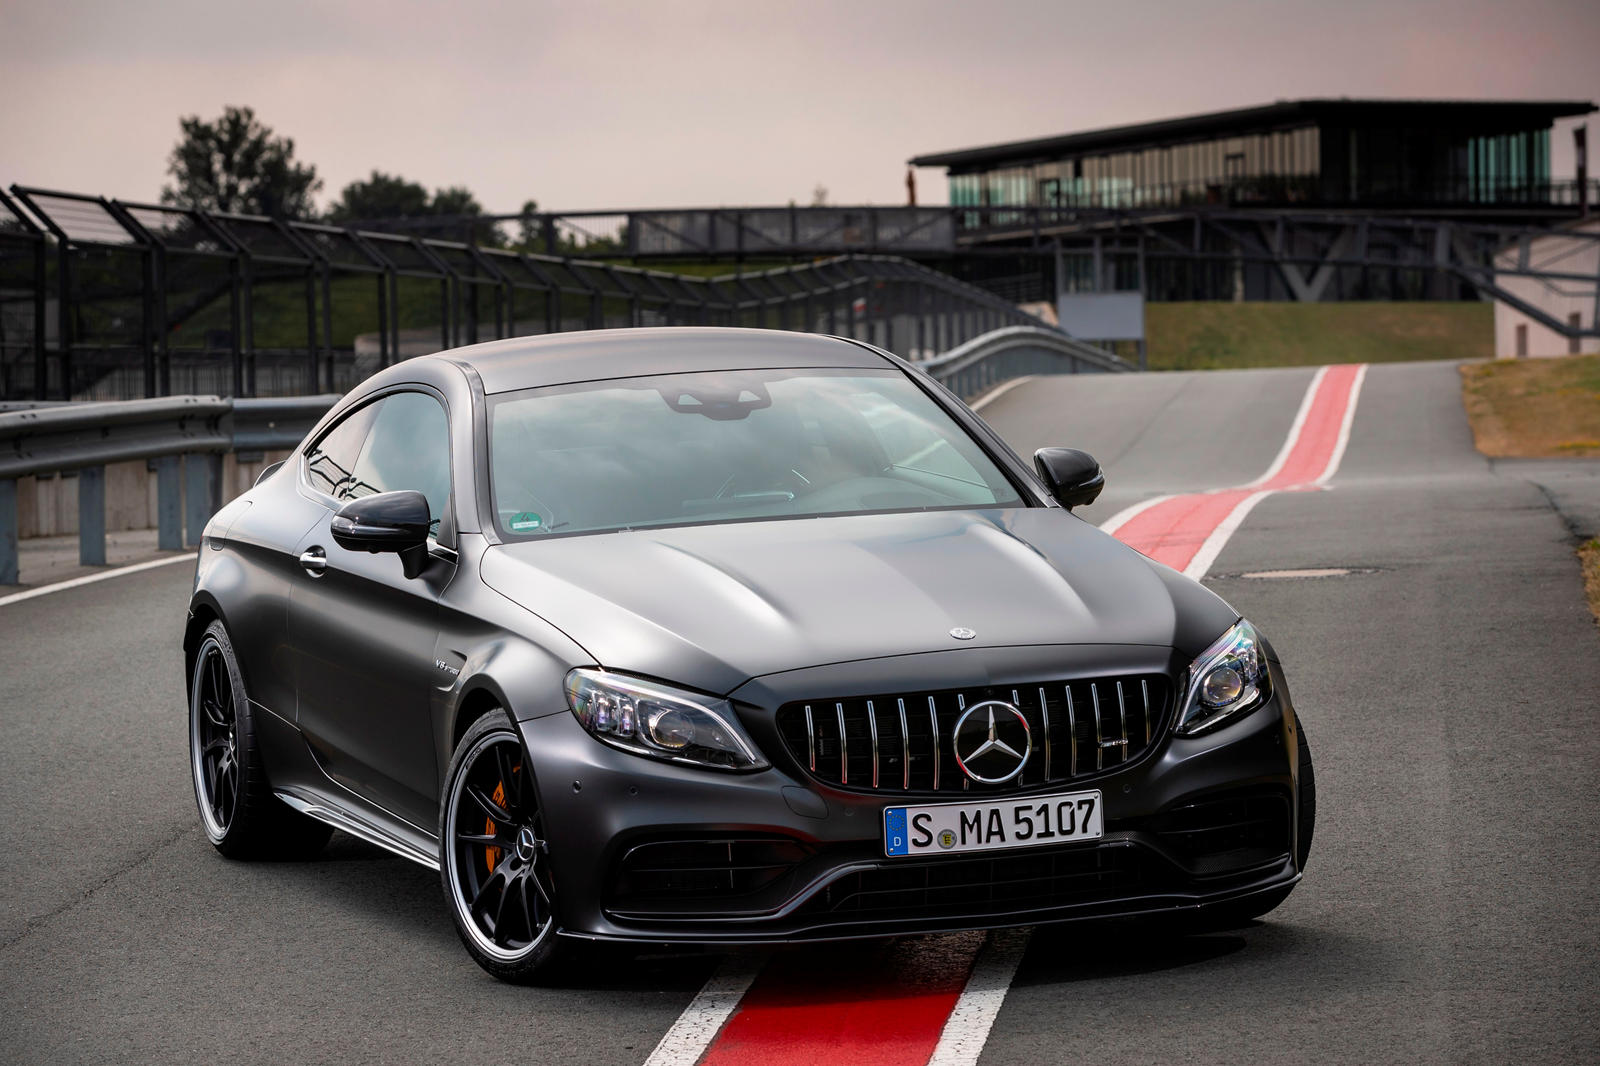 2020 mercedes amg c63 coupe review trims specs price new interior features exterior design and specifications carbuzz carbuzz